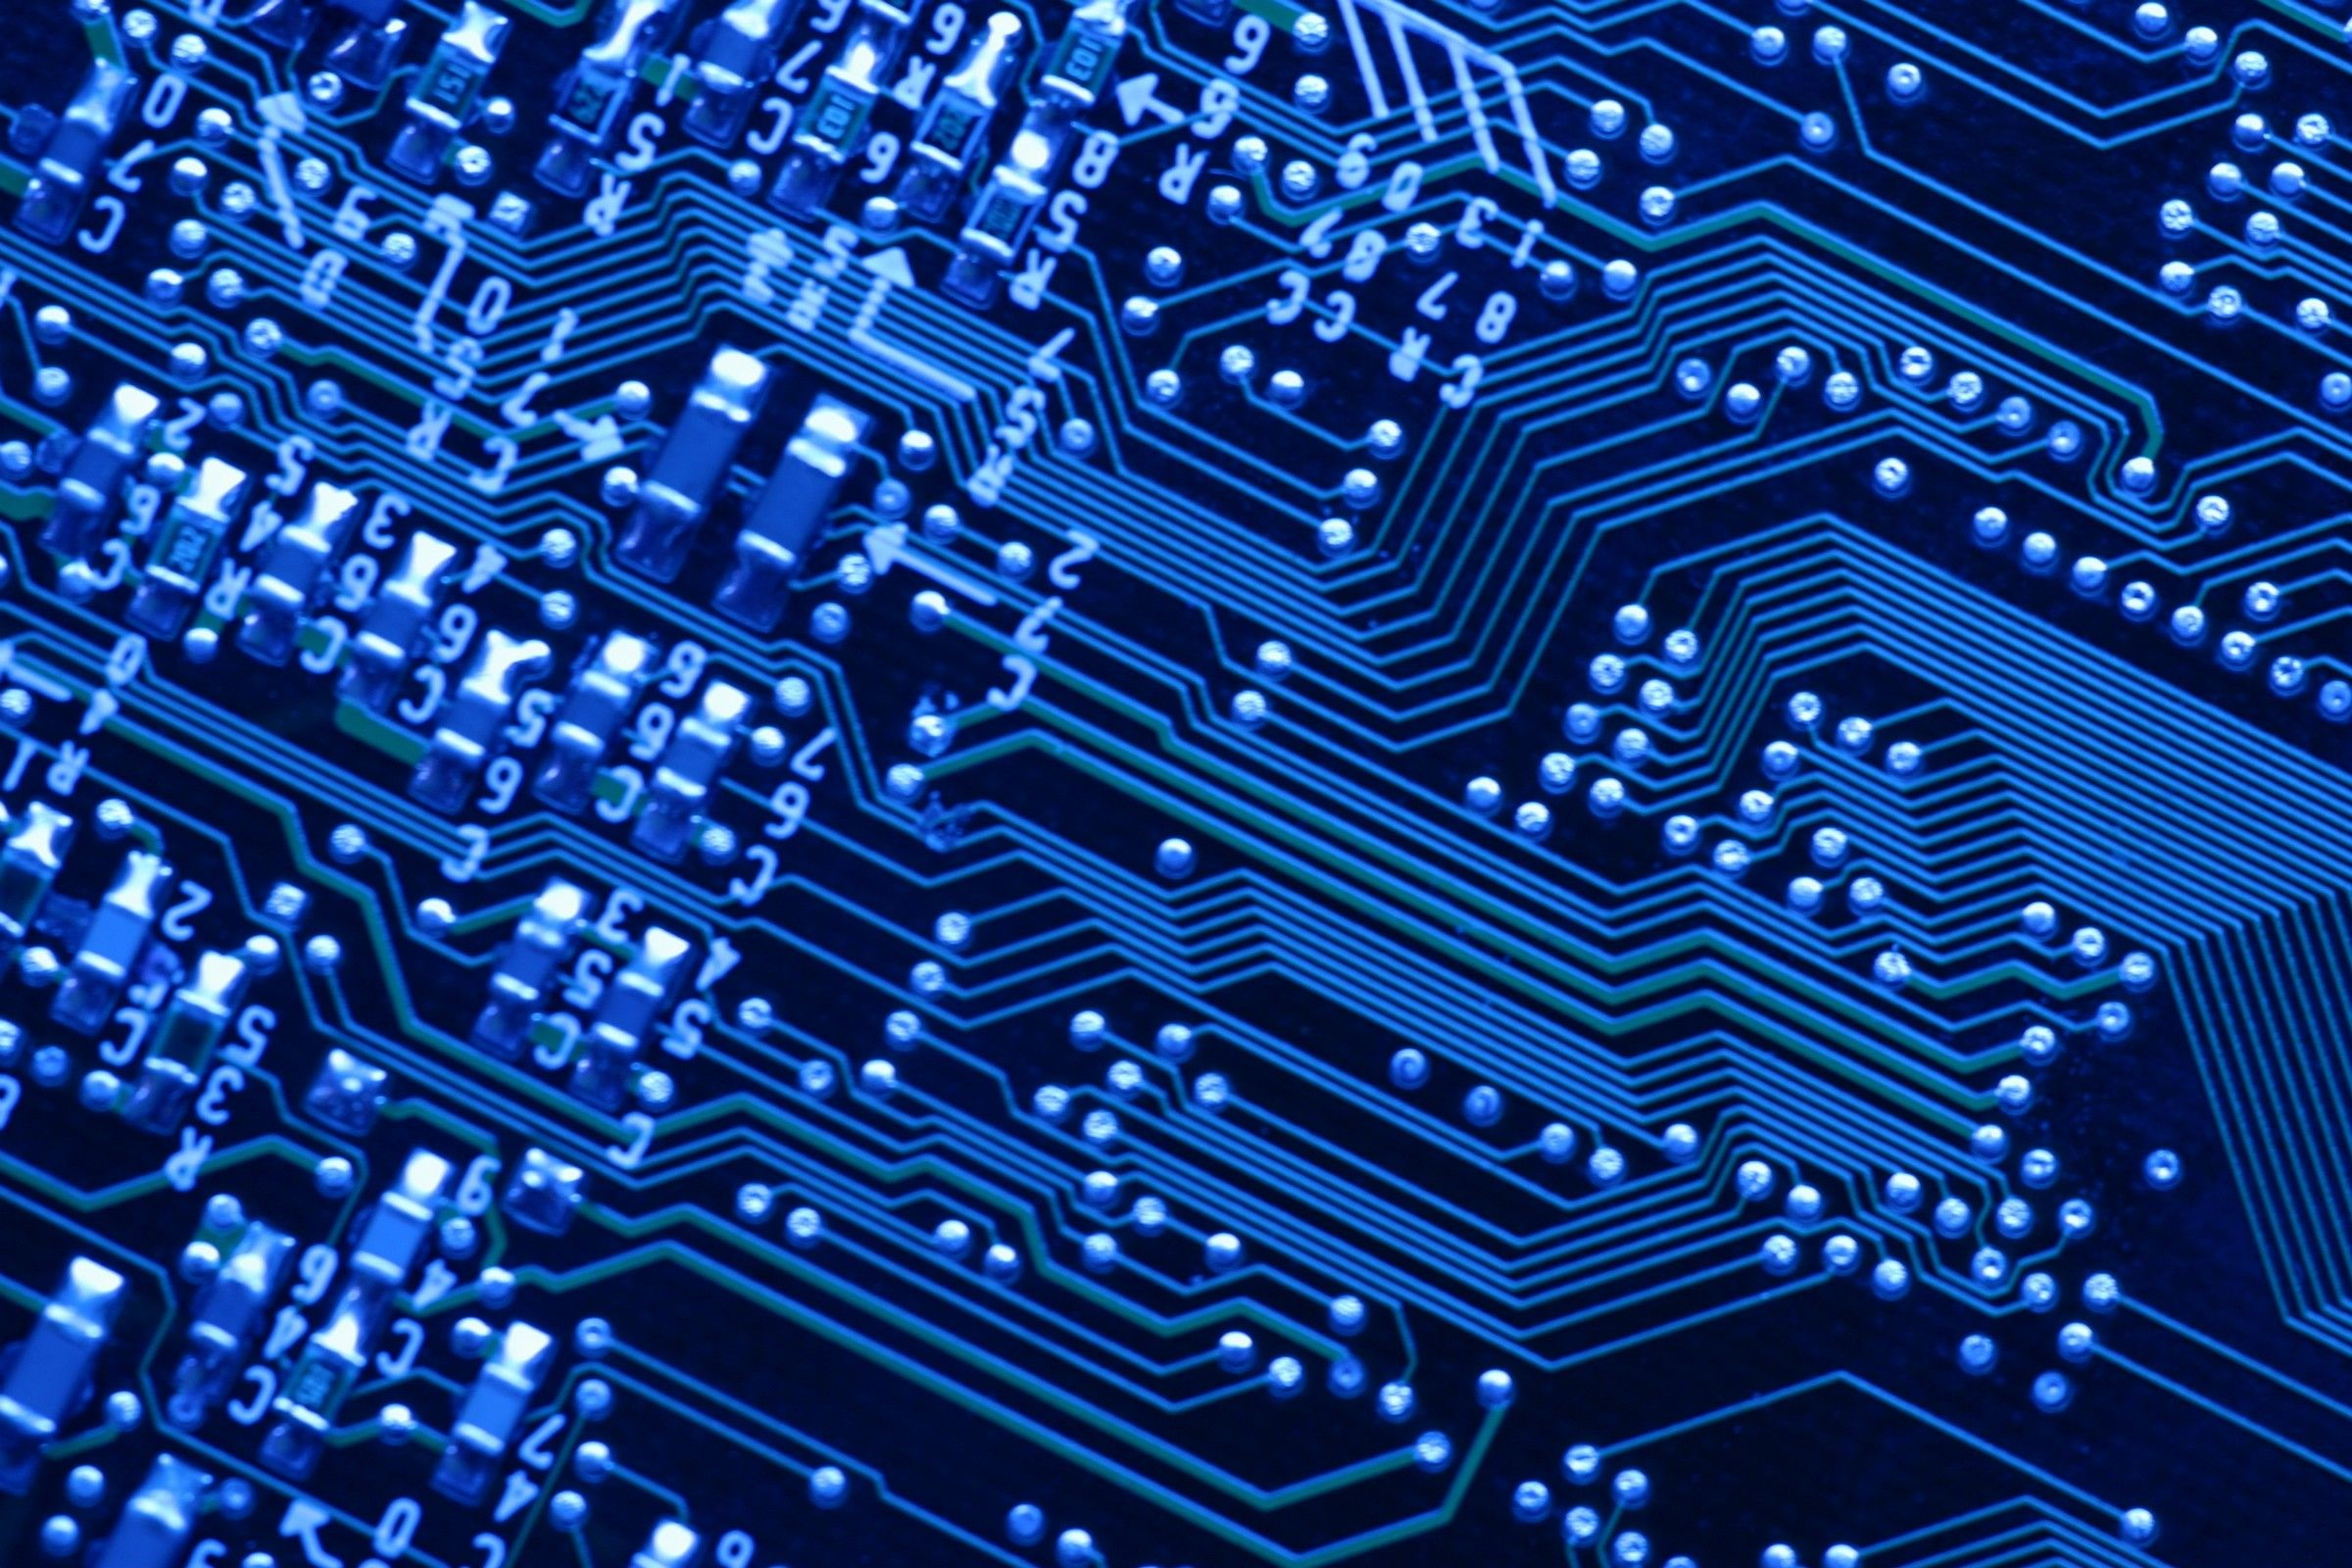 Computer Chip Wallpapers Top Free Computer Chip Backgrounds Wallpaperaccess